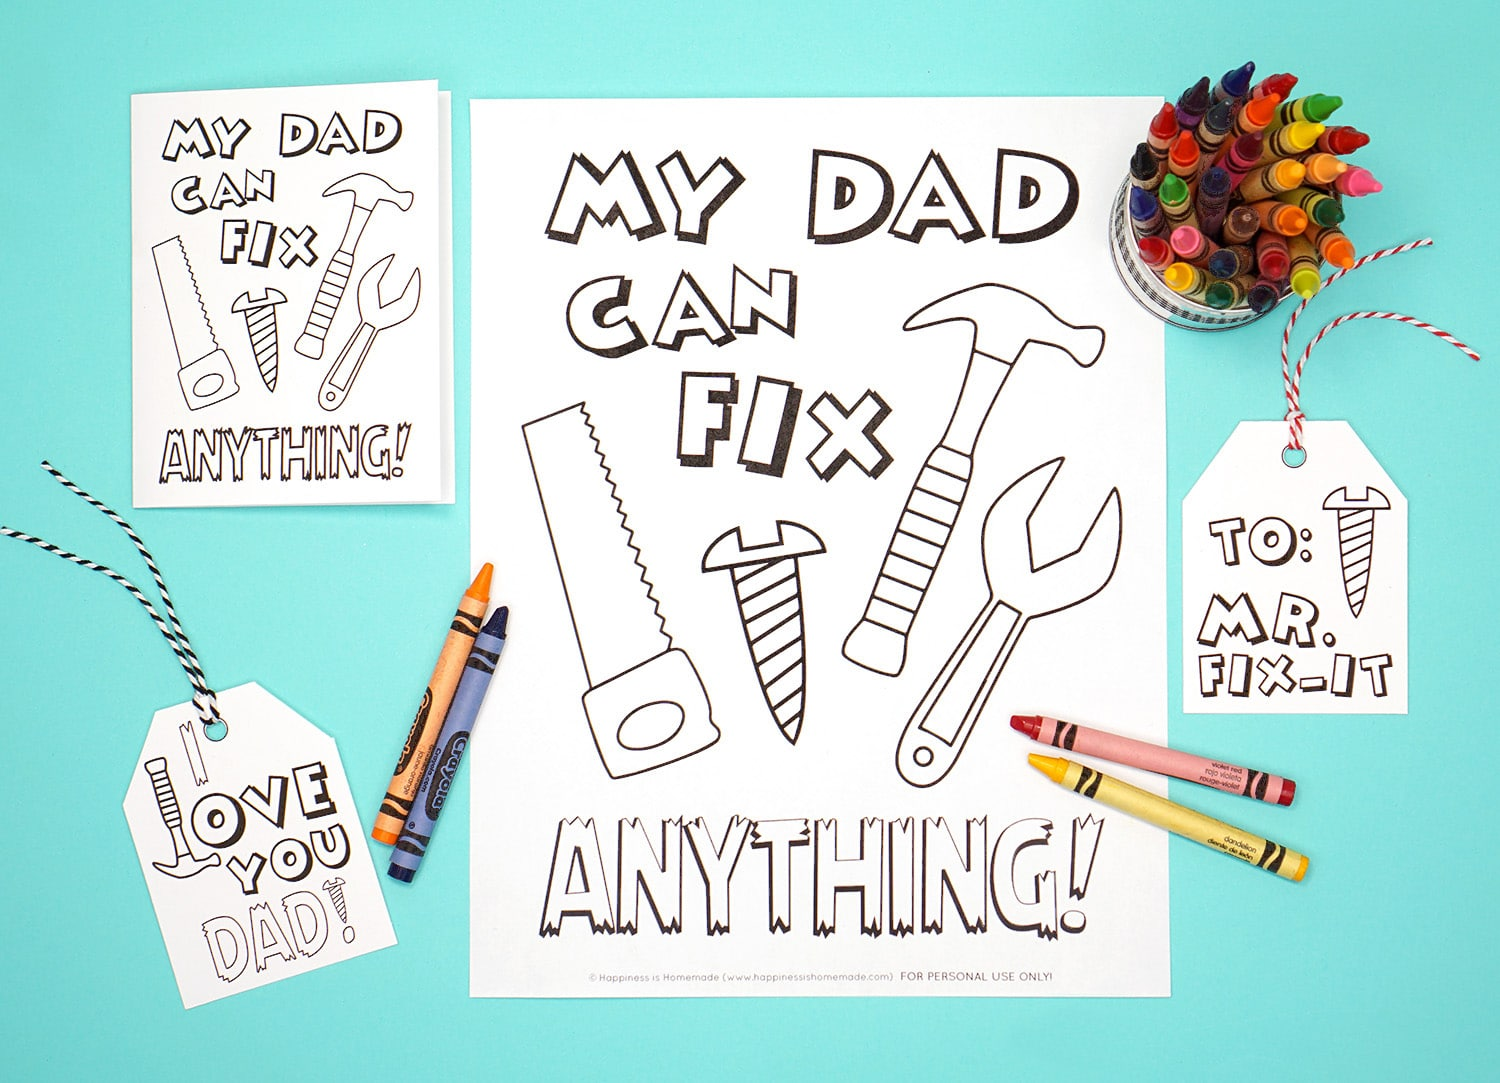 photograph regarding Printable Fathers Day Cards named Printable Fathers Working day Card + Coloring Website page - Contentment is